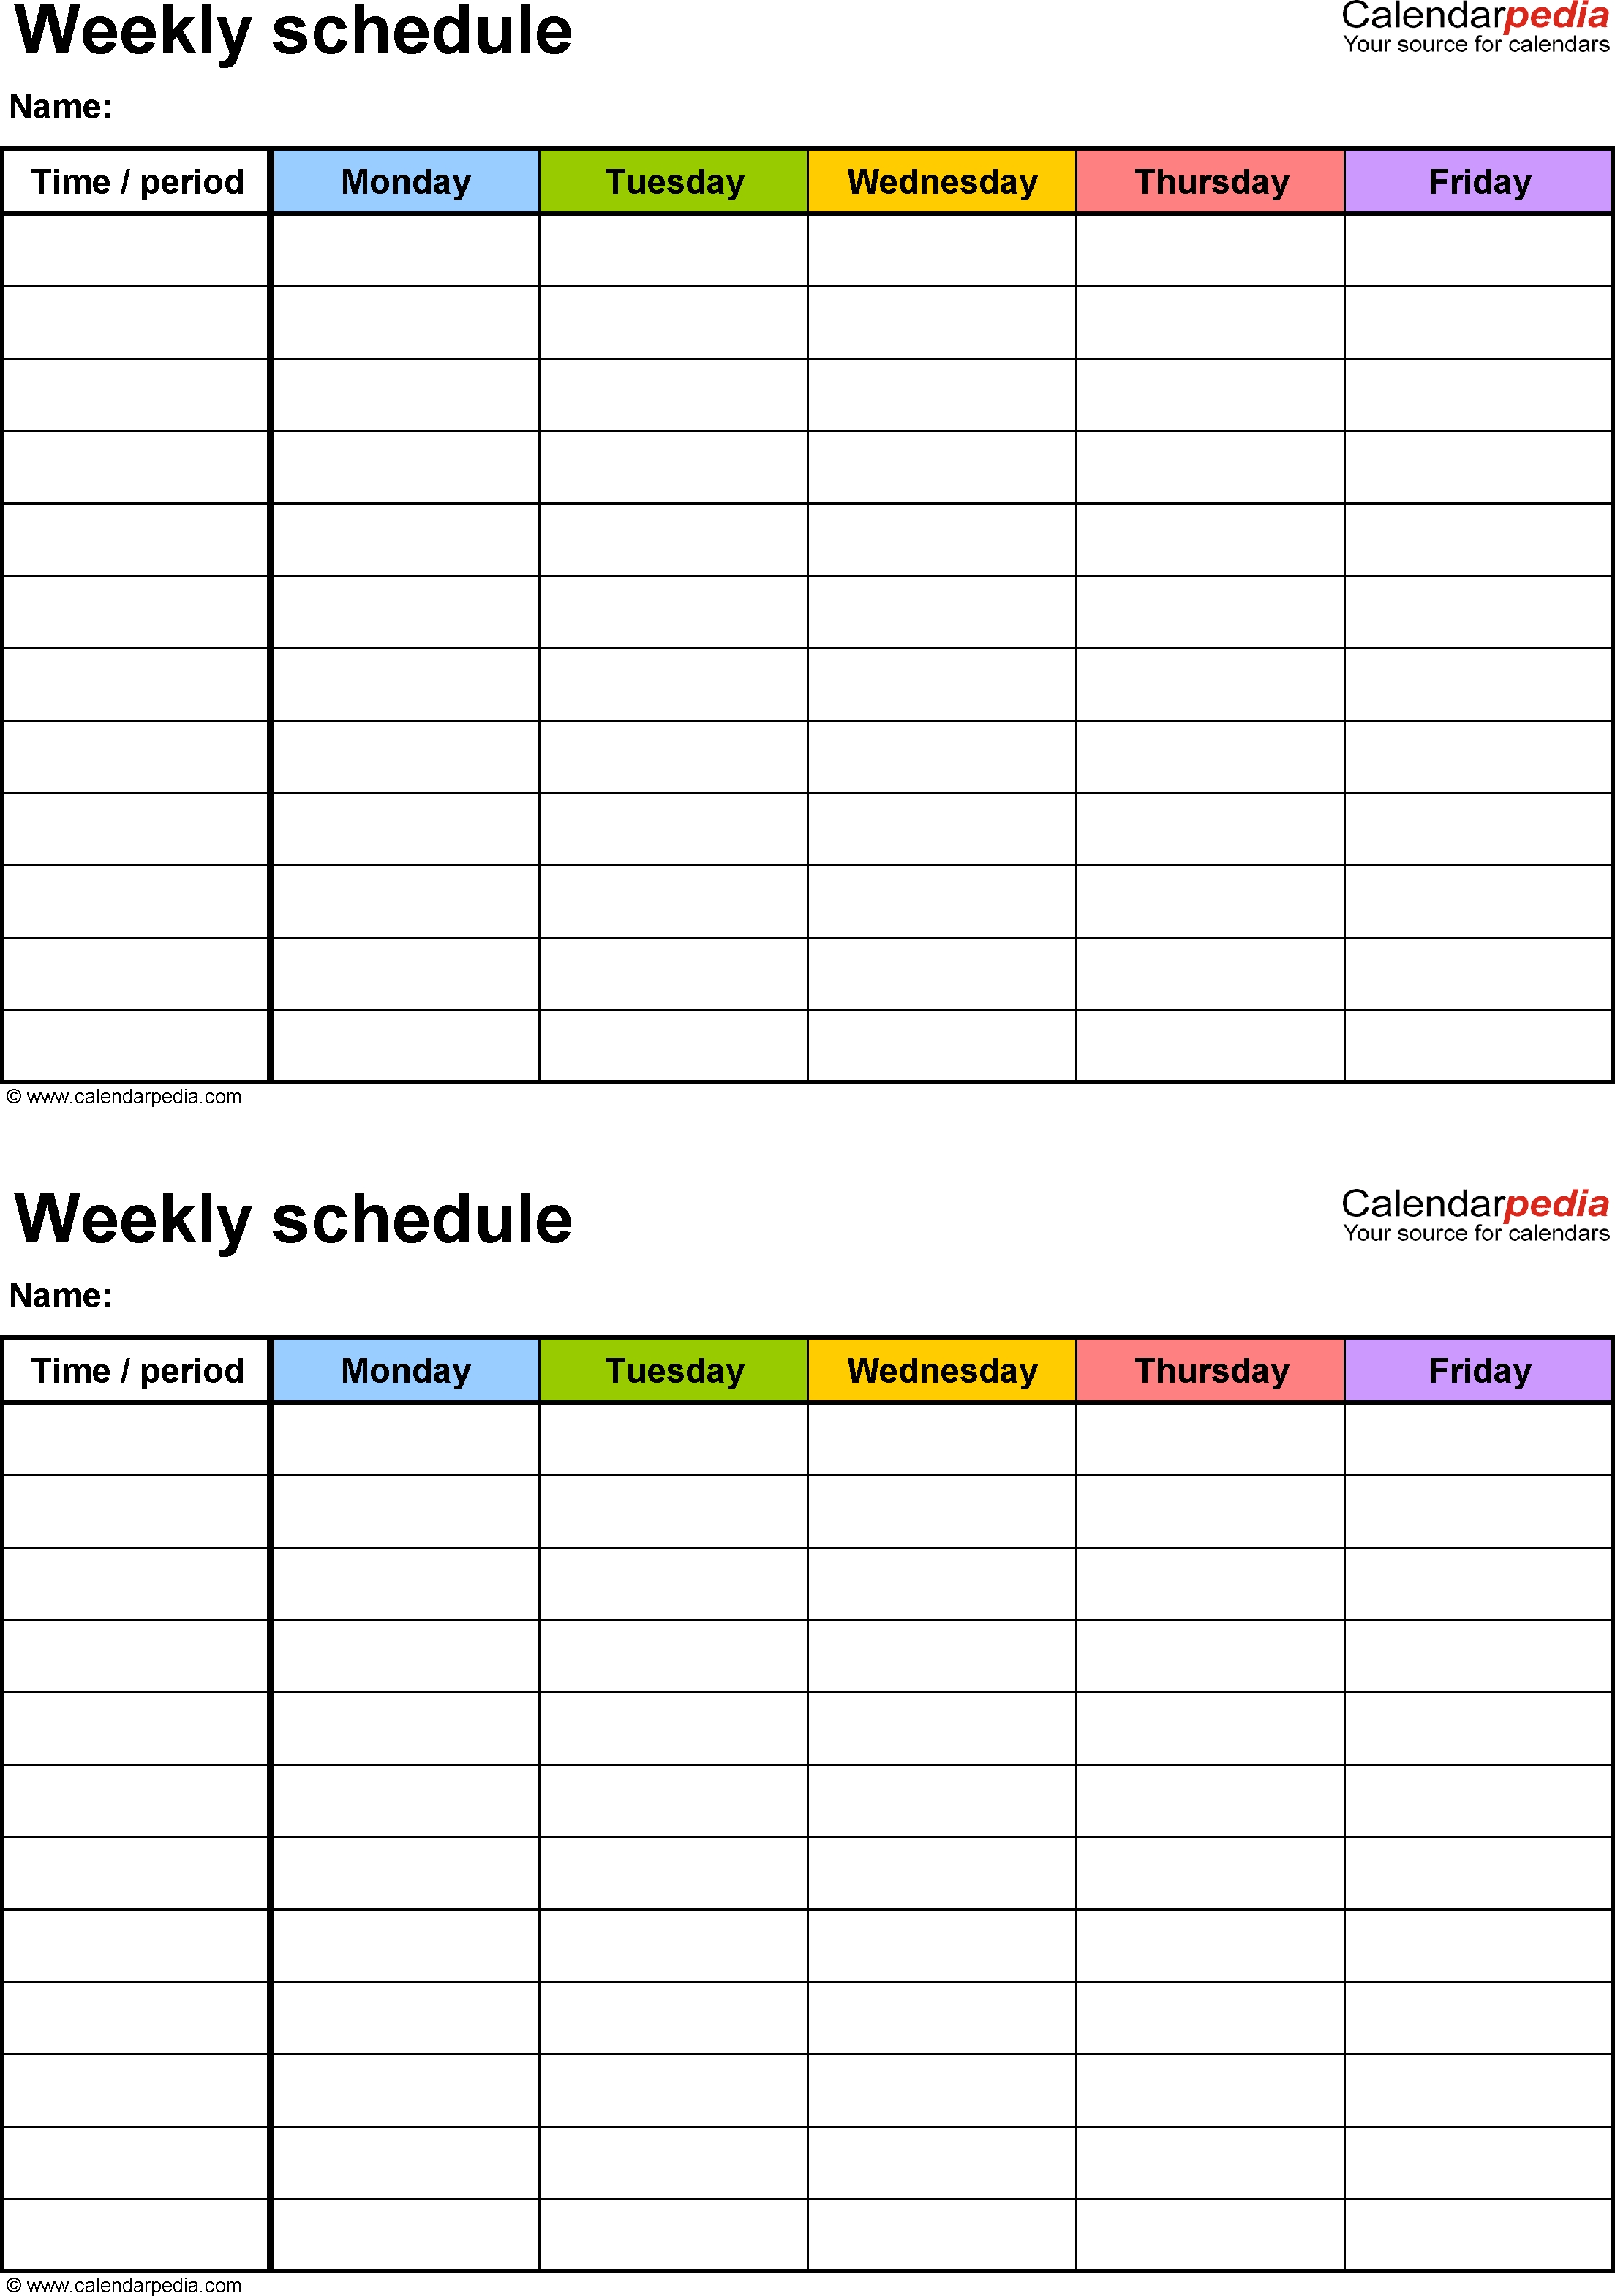 Free Weekly Schedule Templates For Word - 18 Templates pertaining to Monday Through Friday Calendar With Times